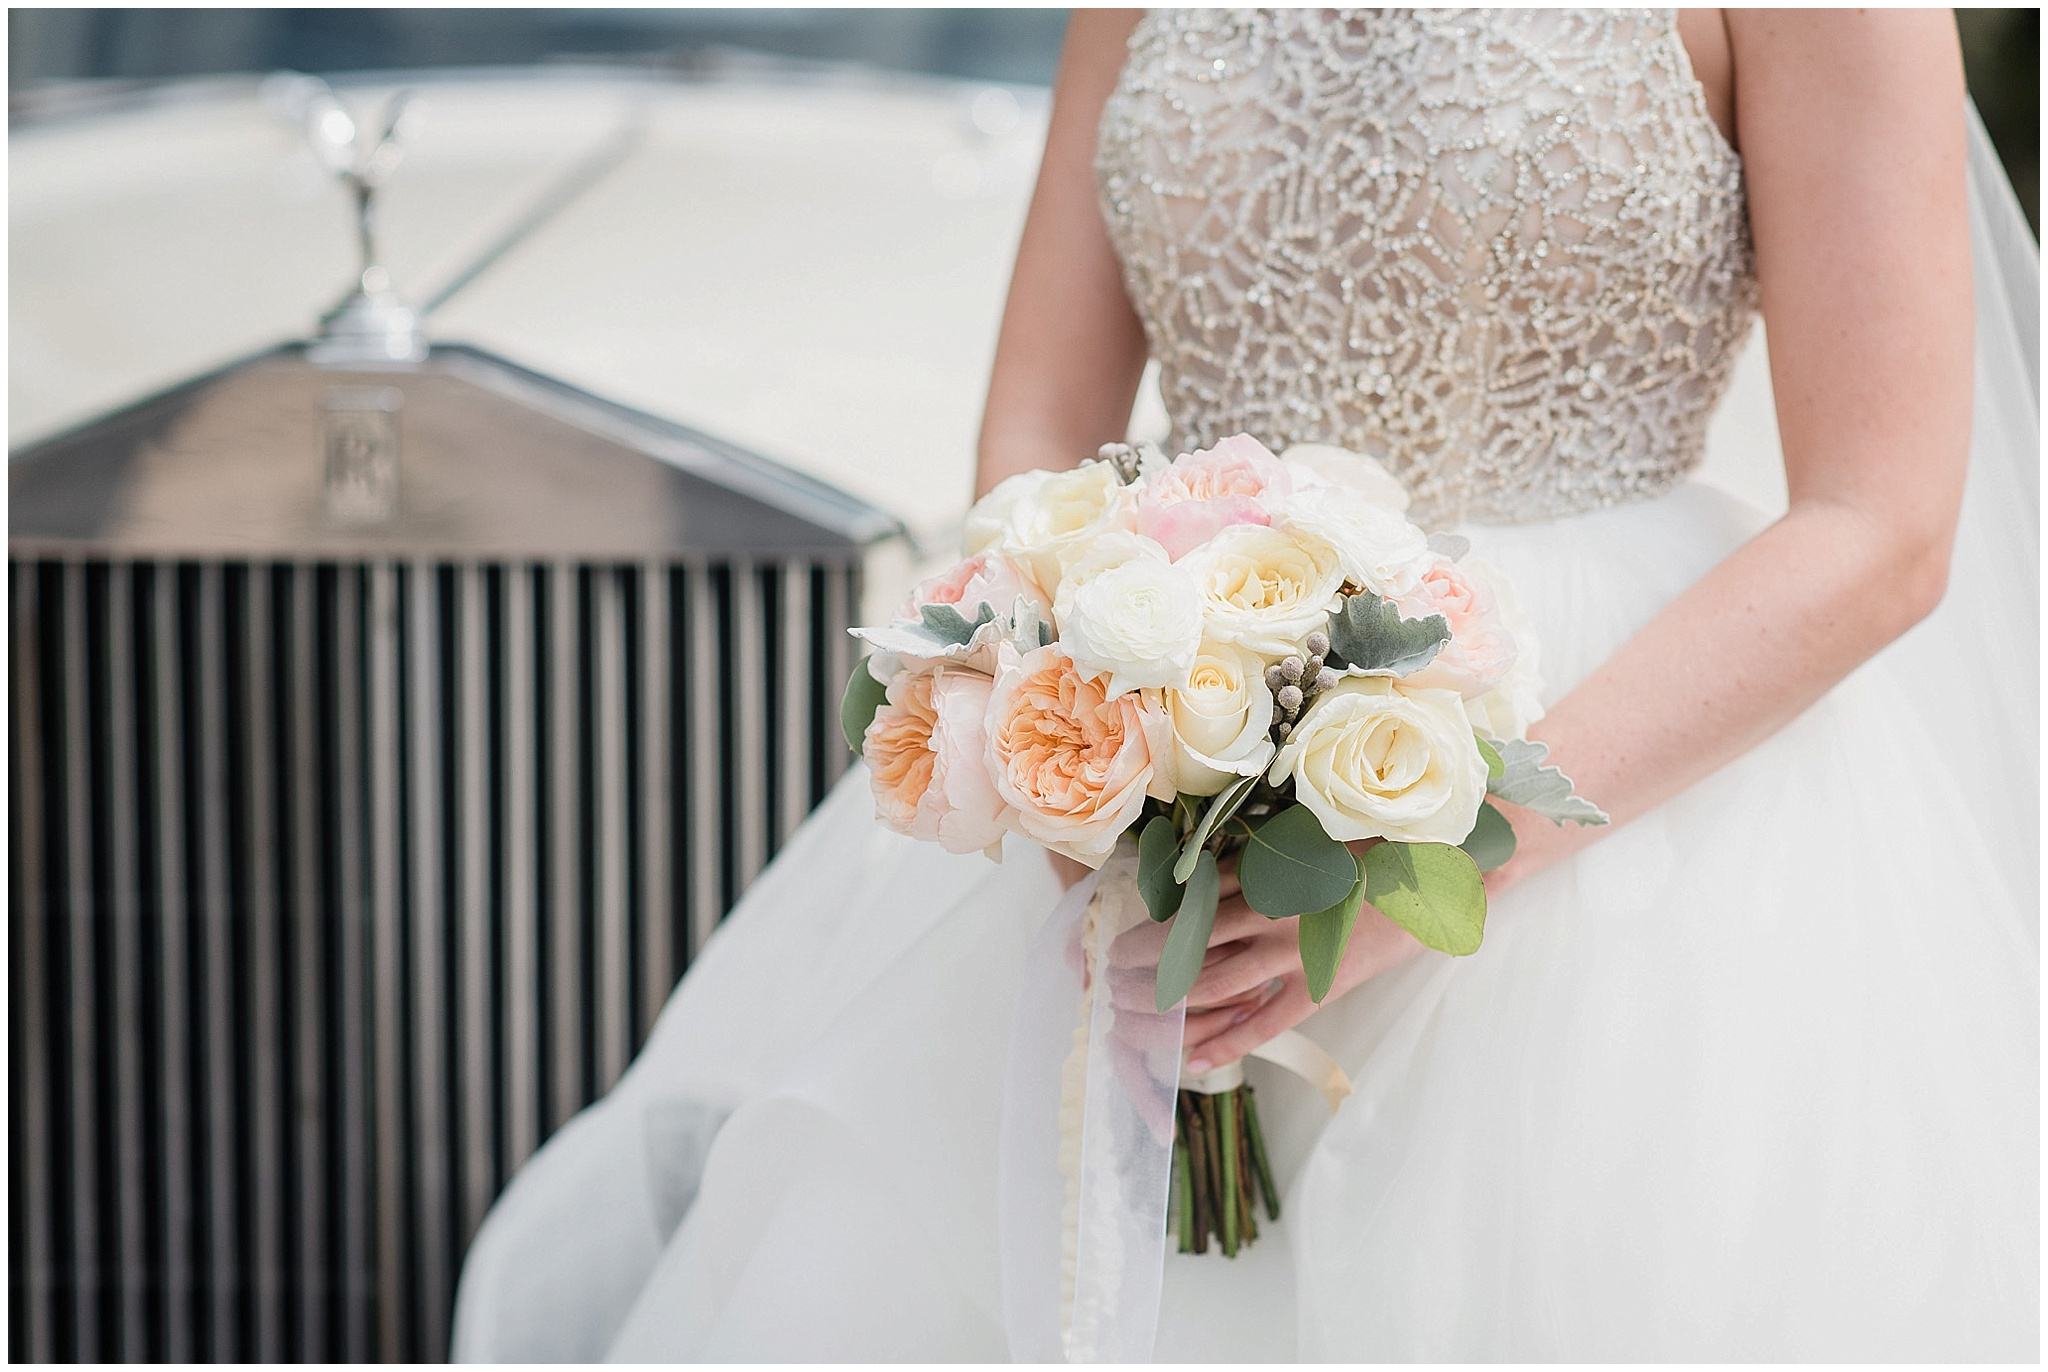 Bride's bouqet of peonies by Pocket of Posies, photographed by Jenn Kavanagh Photography